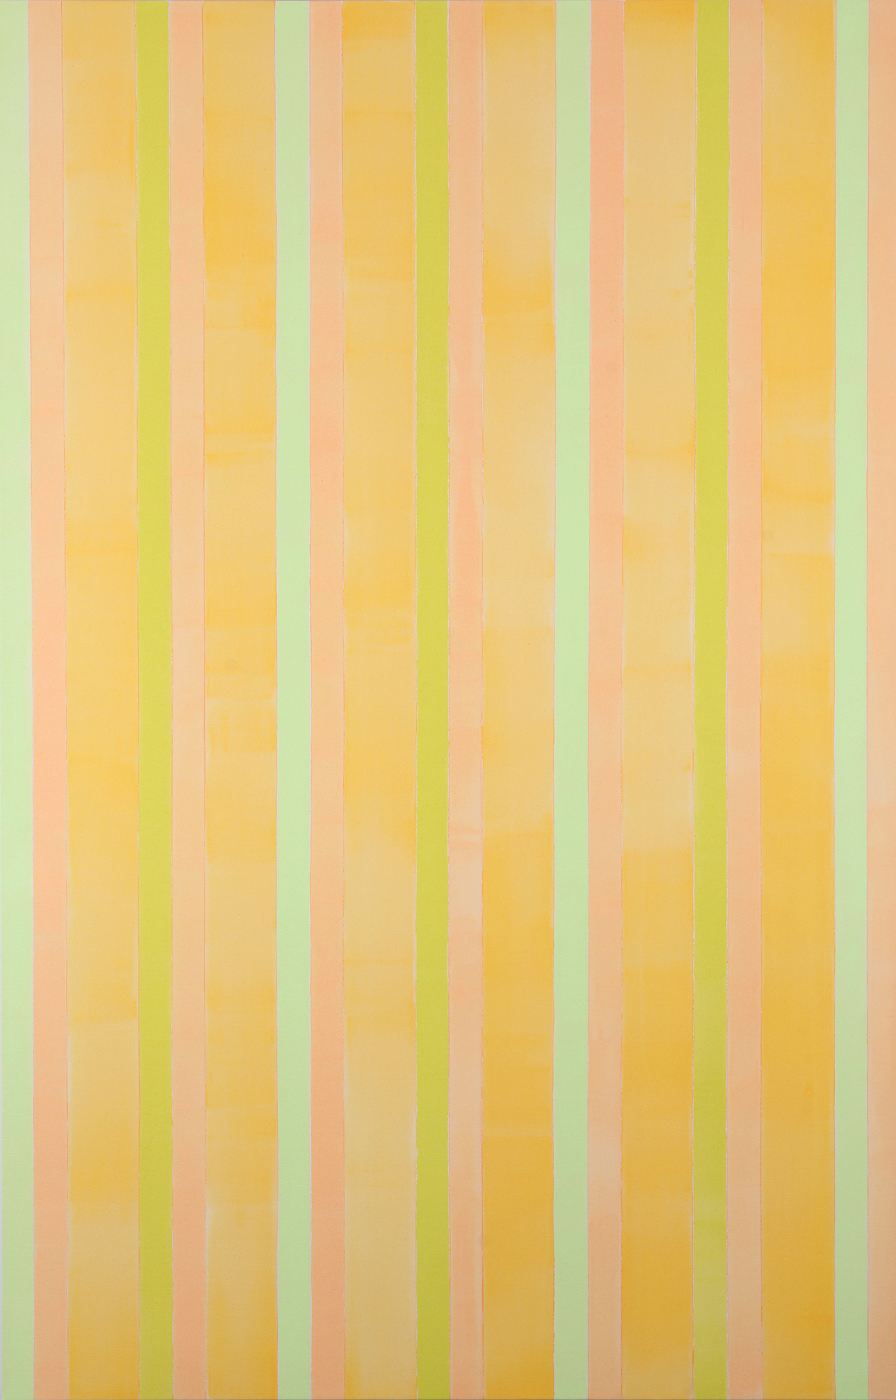 "#5 in Gold (2012), acrylic on canvas, 84"" x 52"""